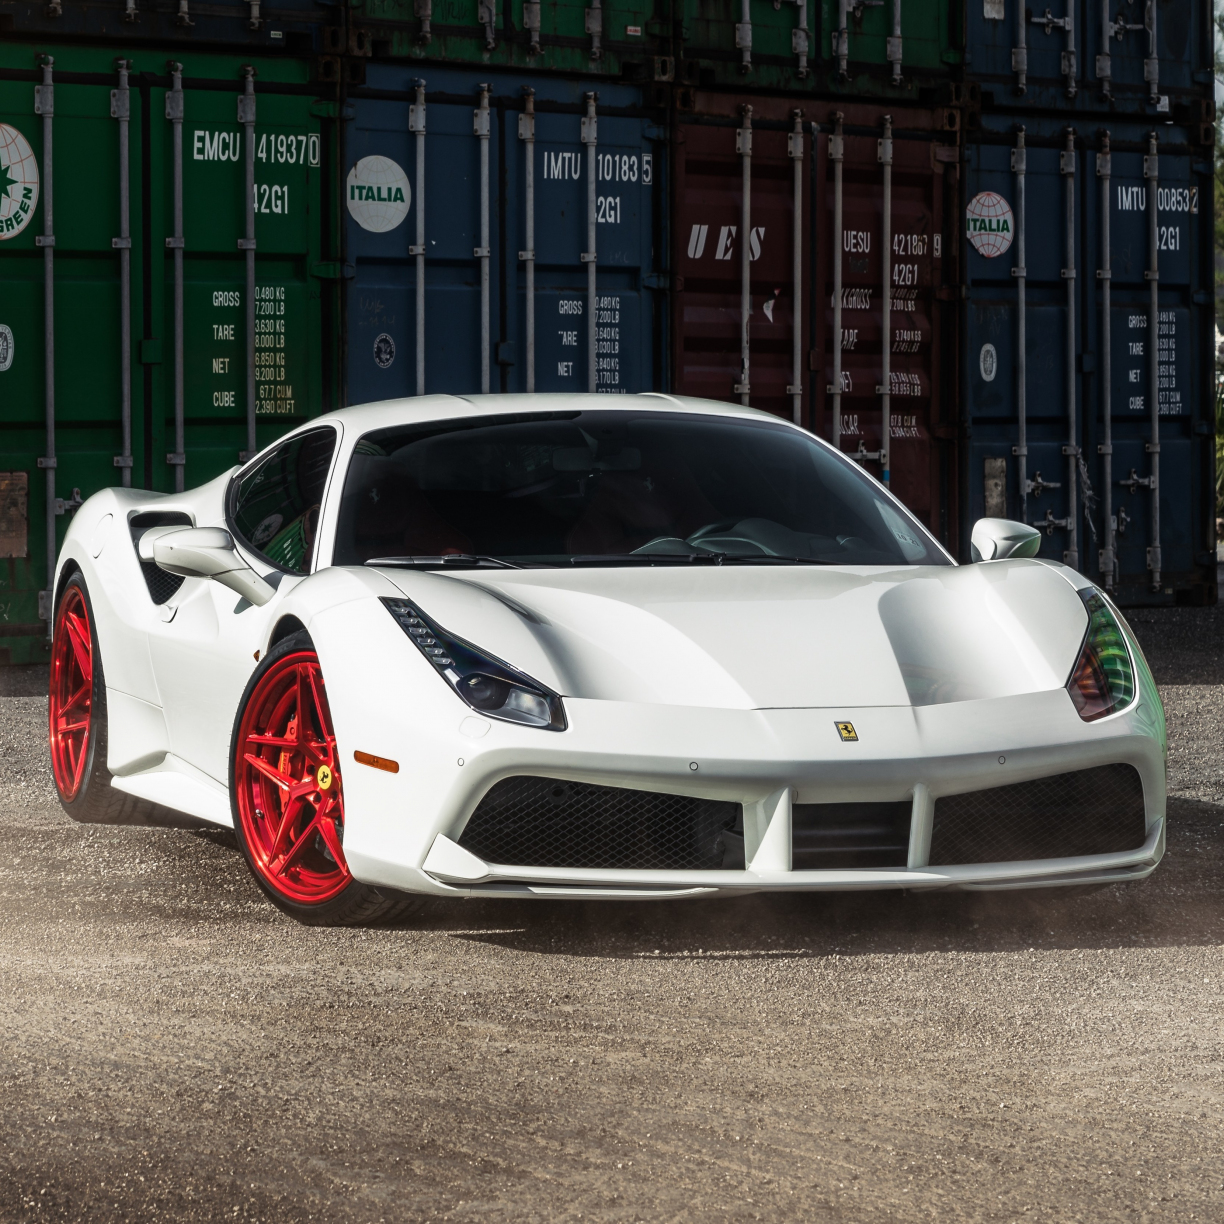 Desktop Wallpaper Ferrari 458 Italia White Sports Car Hd